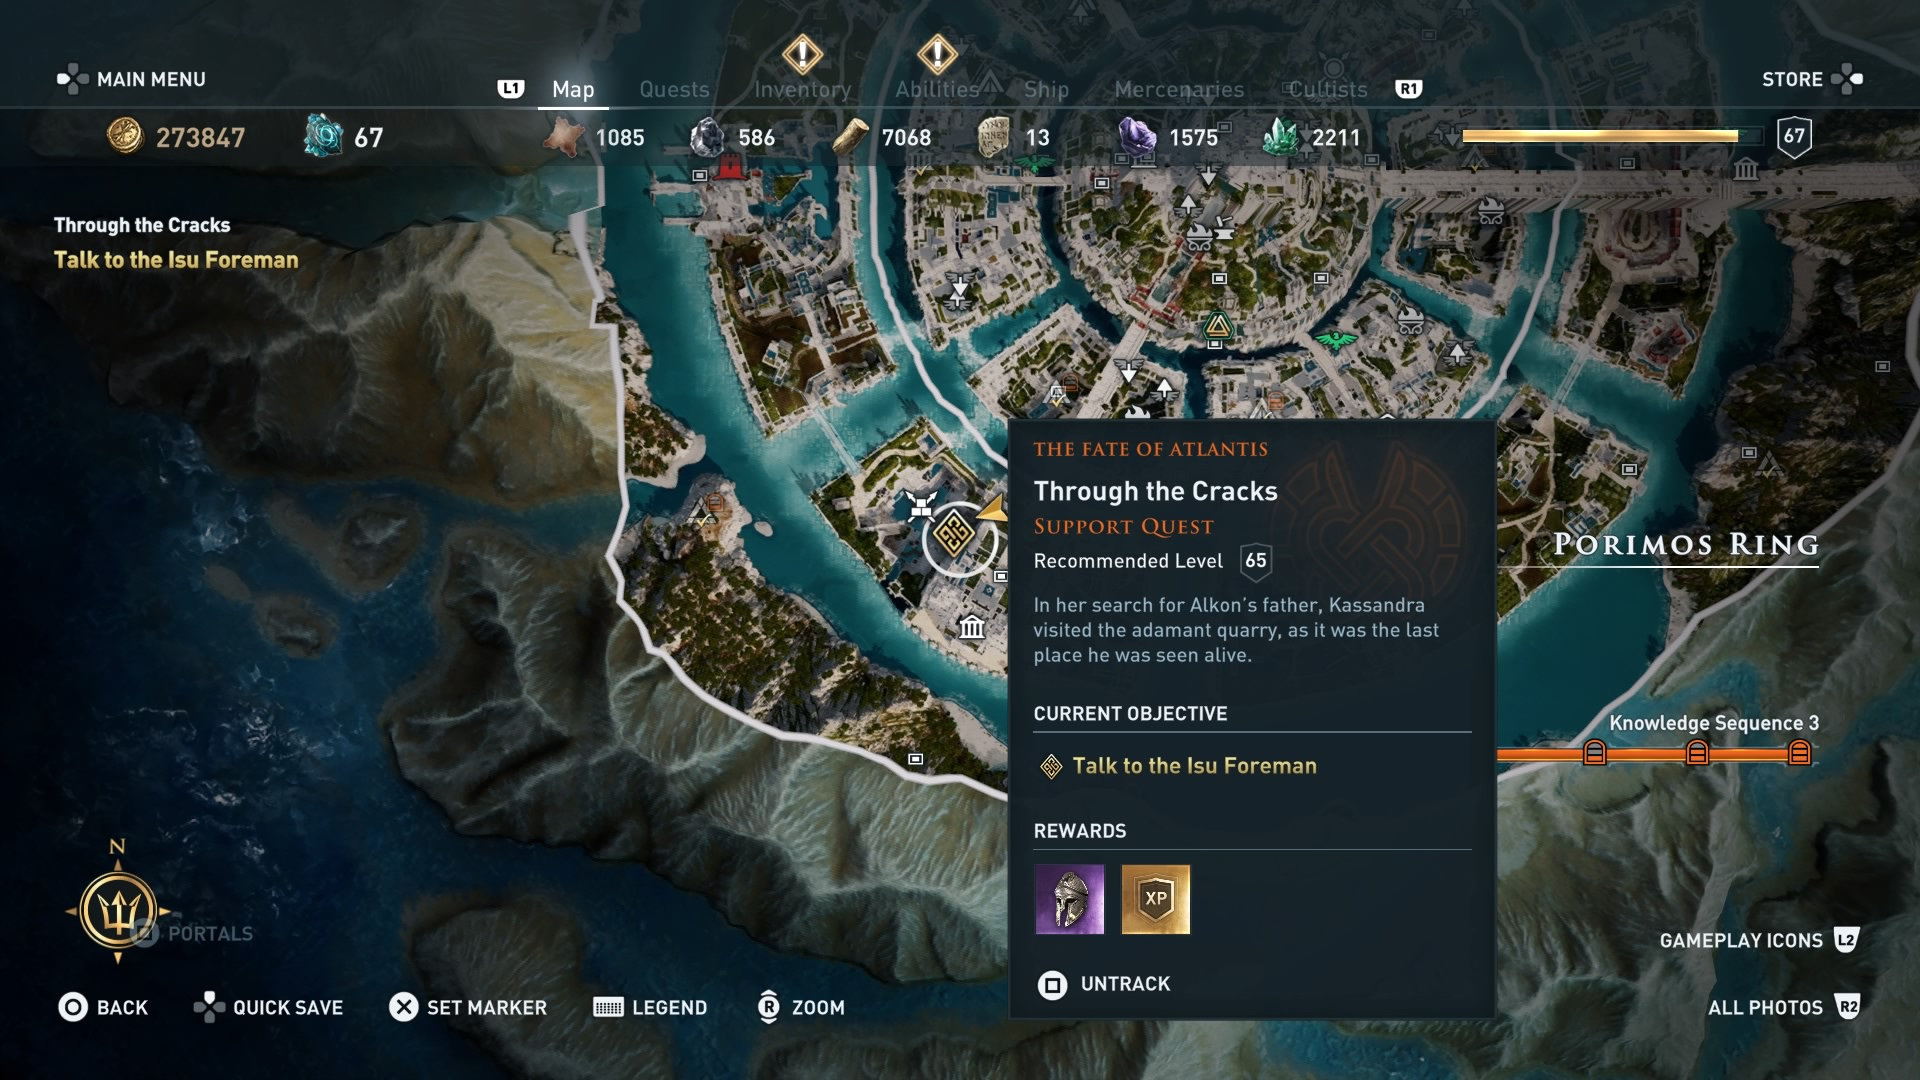 Assassin's Creed Odyssey Judgement of Atlantis Choices and